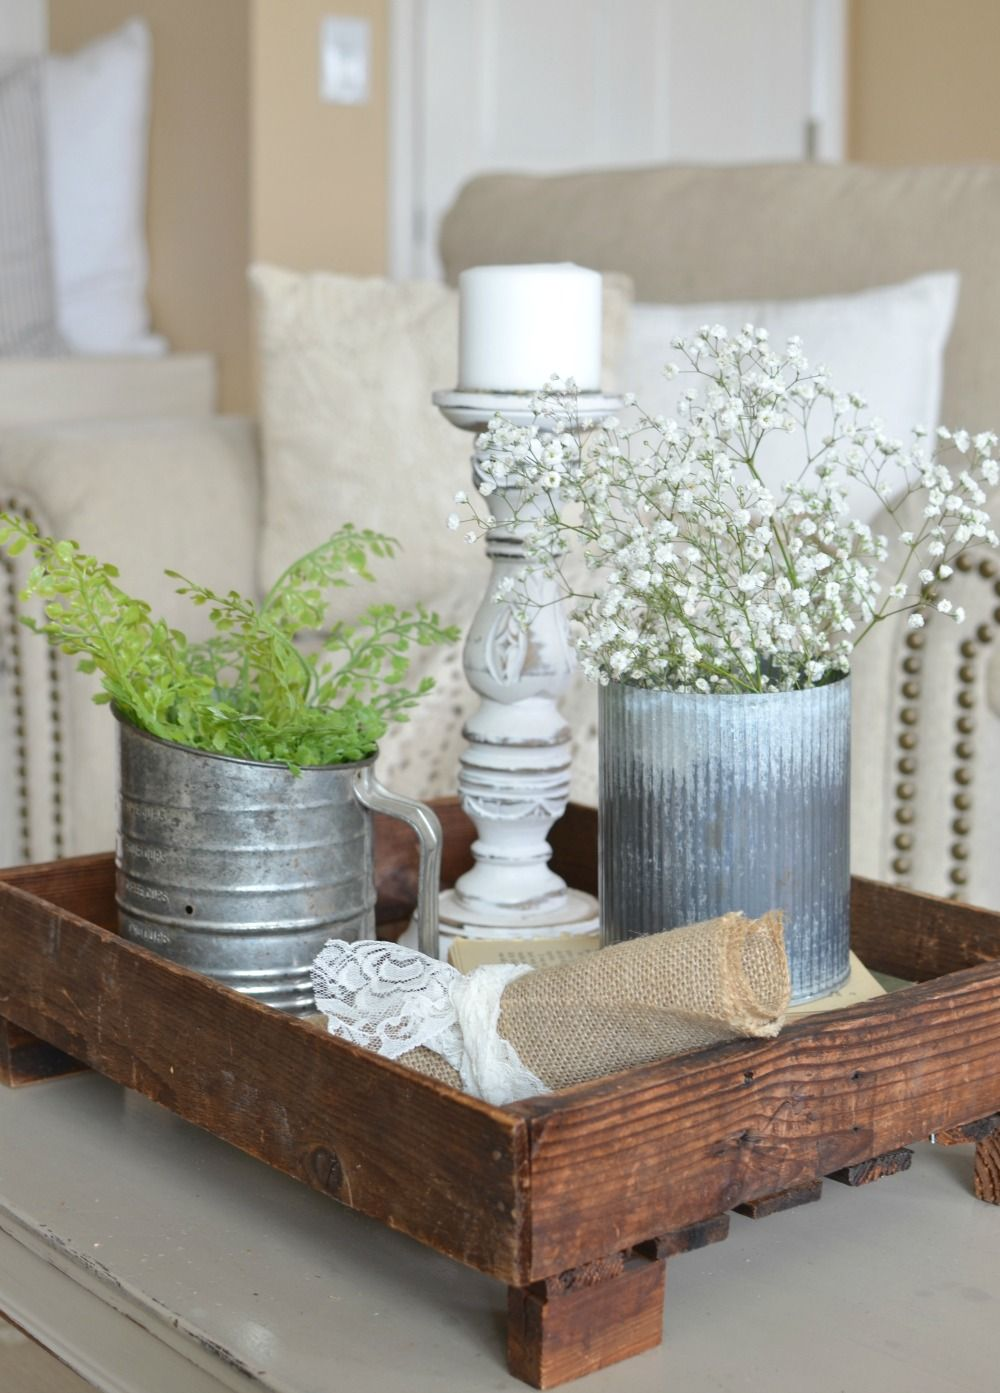 5 Quick Tips For A Farmhouse Style Vignette Home Decor